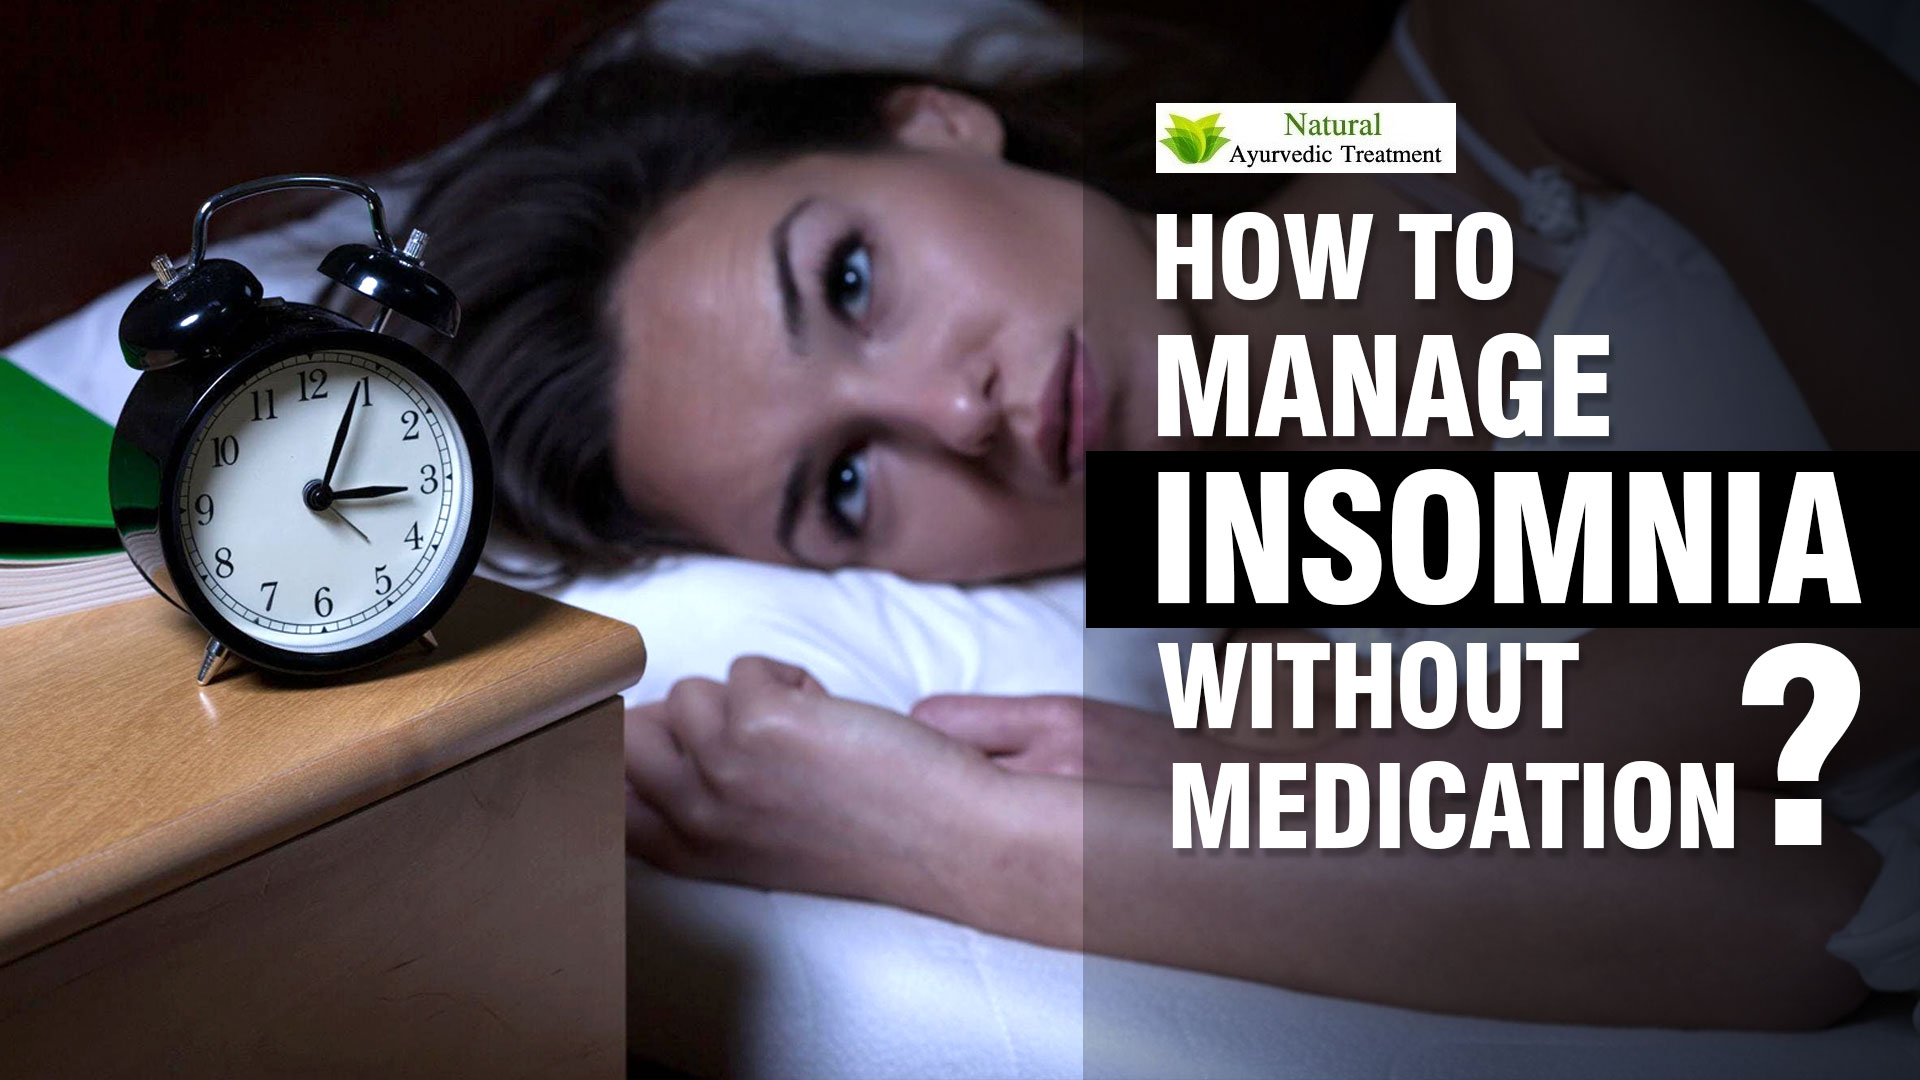 How to Manage Insomnia without Medication?